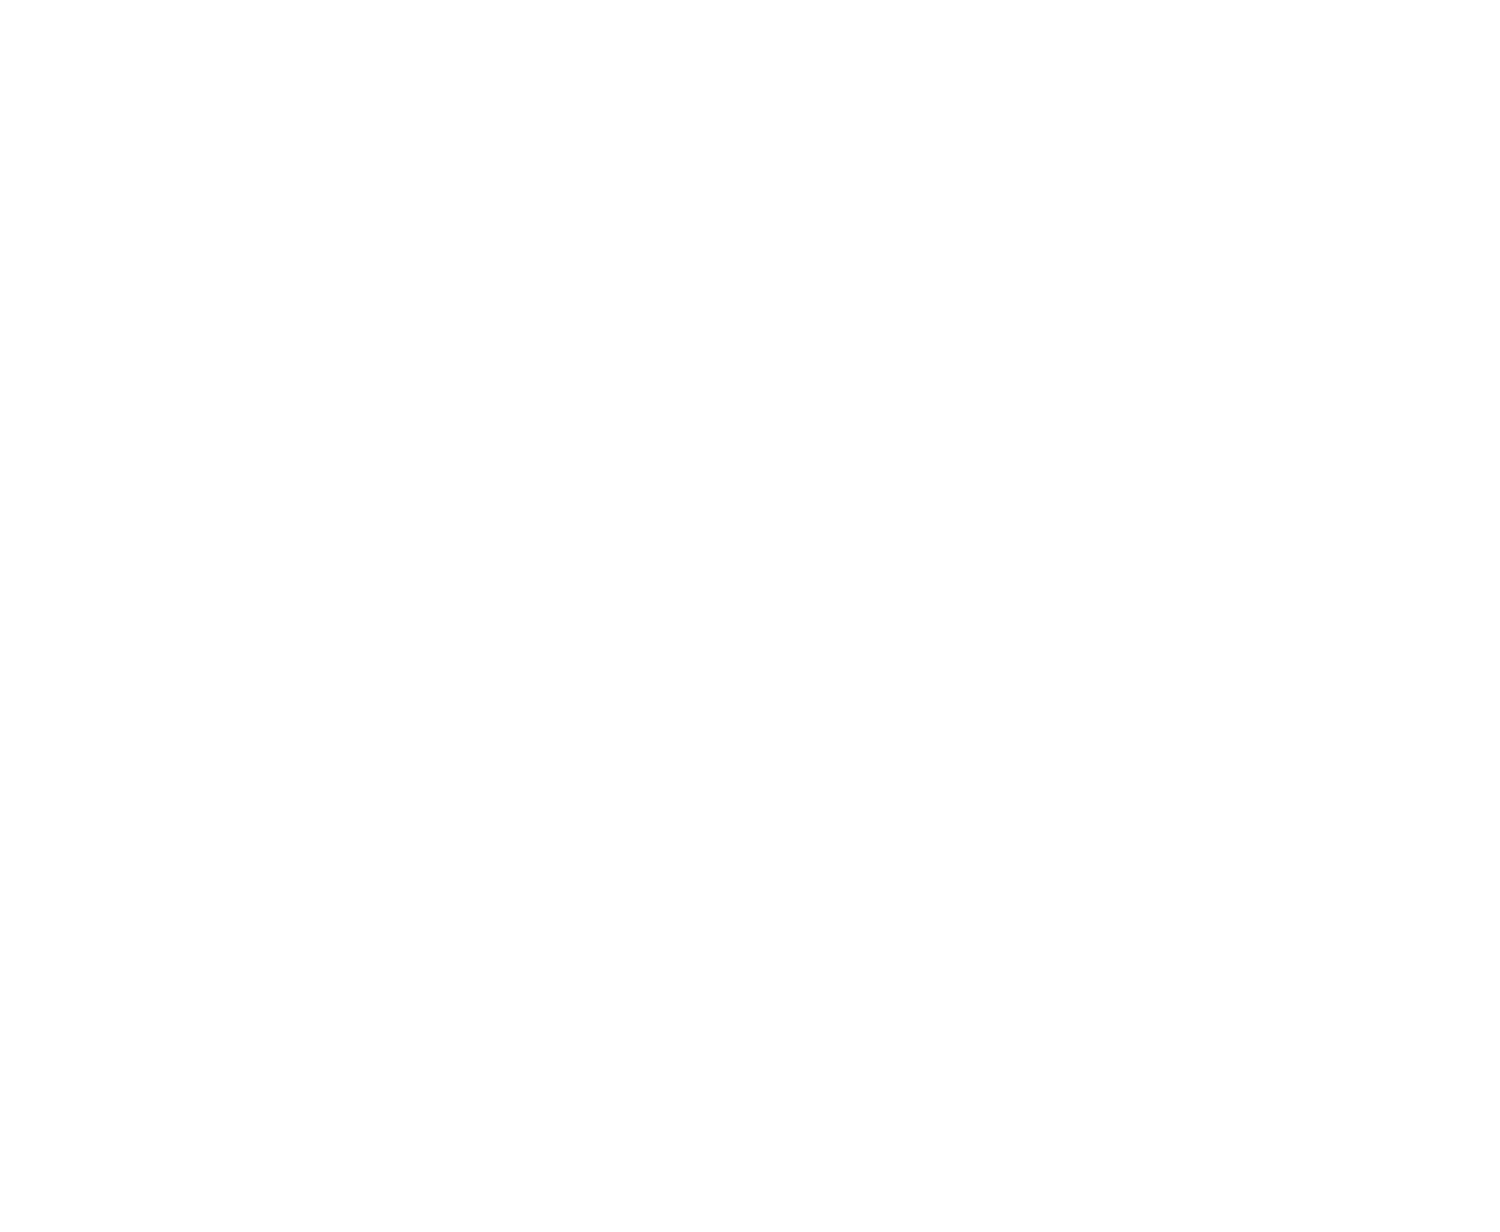 Windsor & Willow